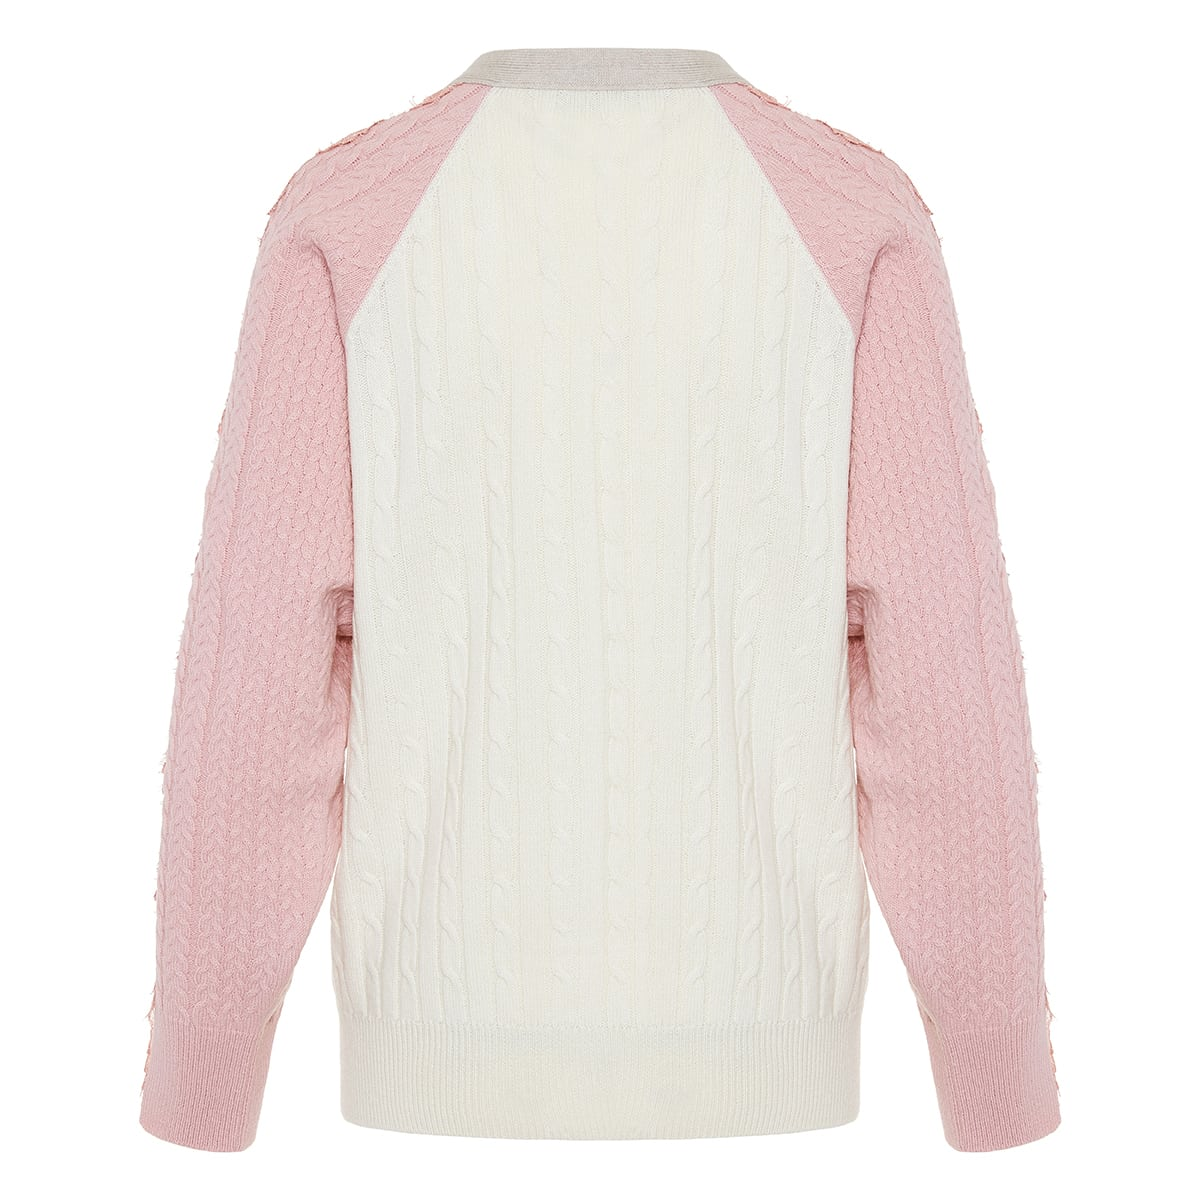 Lace-paneled cable knit cardigan